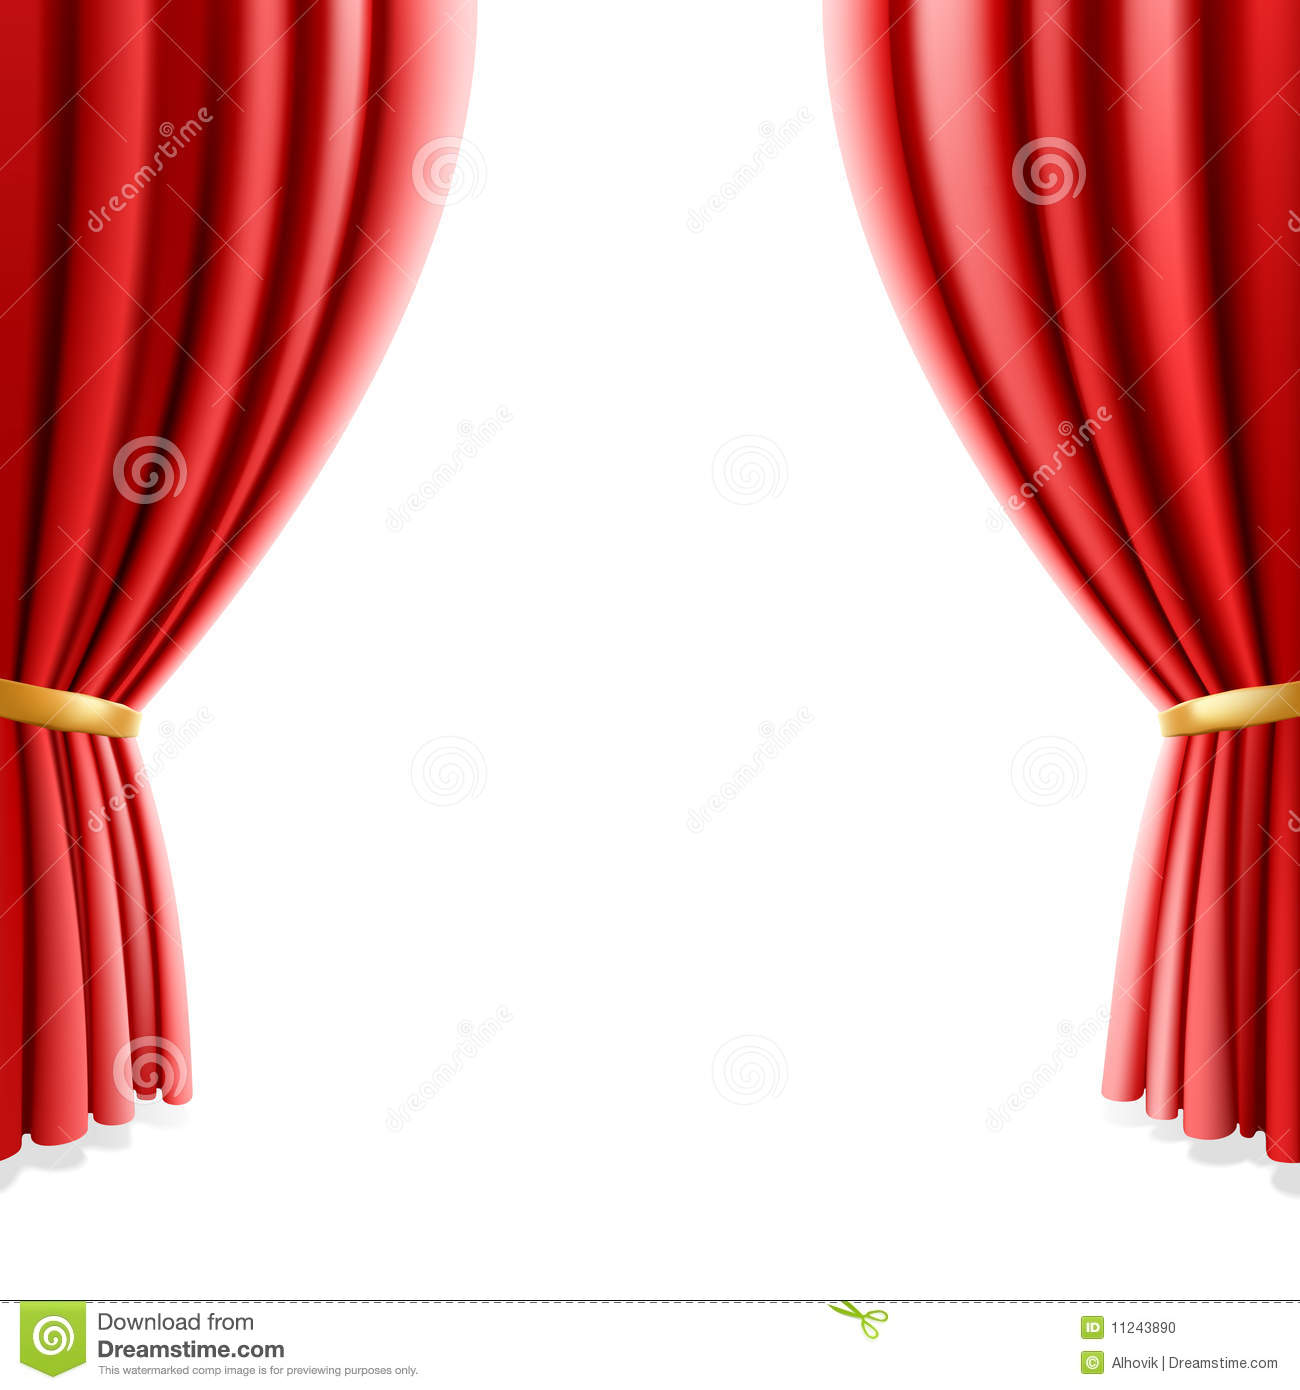 Background Curtain Red Theater White Stock Illustrations 2 508 Background Curtain Red Theater White Stock Illustrations Vectors Clipart Dreamstime - Roter Vorhang Clipart